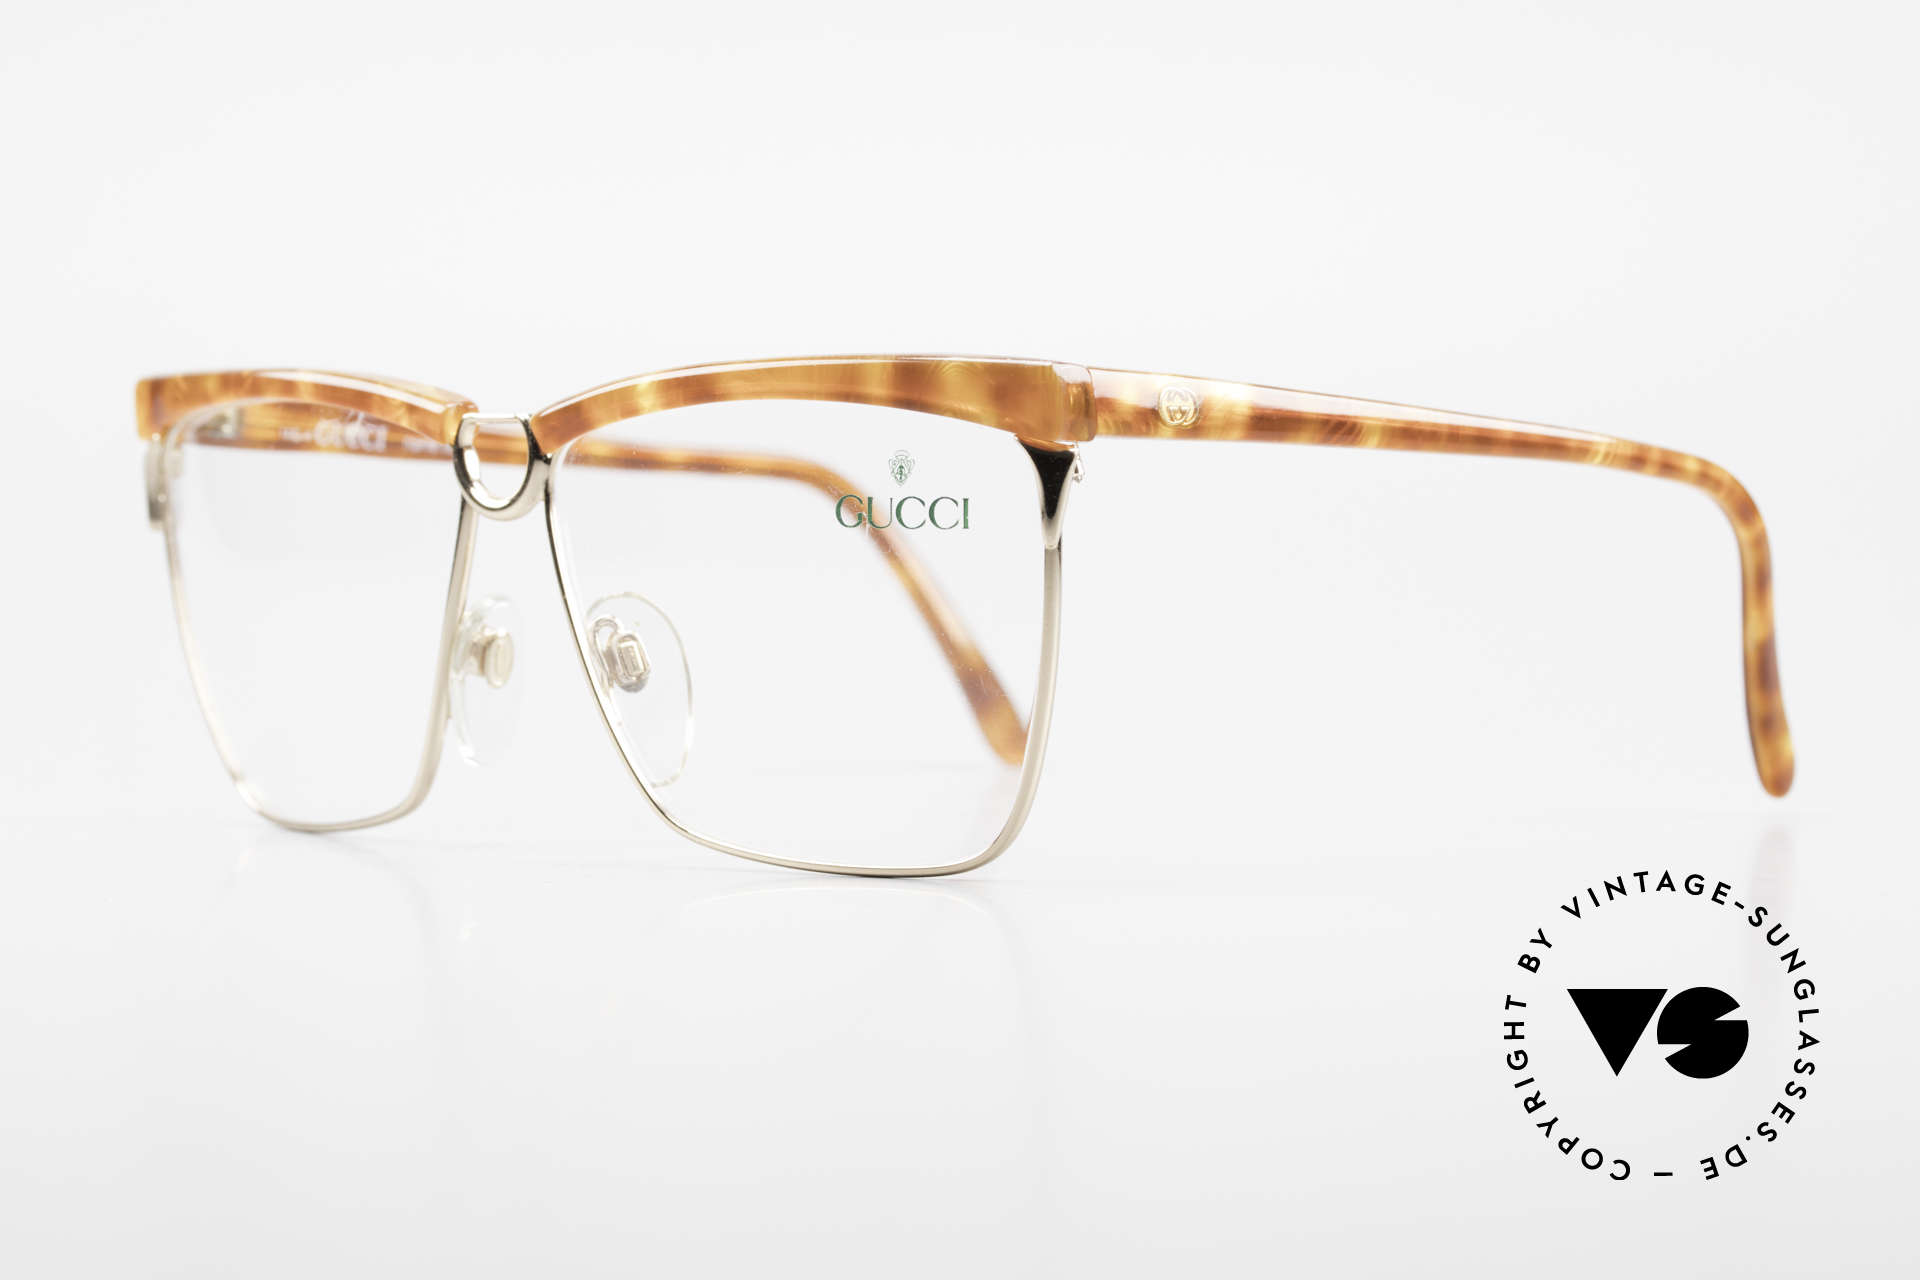 Gucci 2301 Ladies Designer Eyeglasses 80s, a truly rare masterpiece of the late 80's from Italy, Made for Women